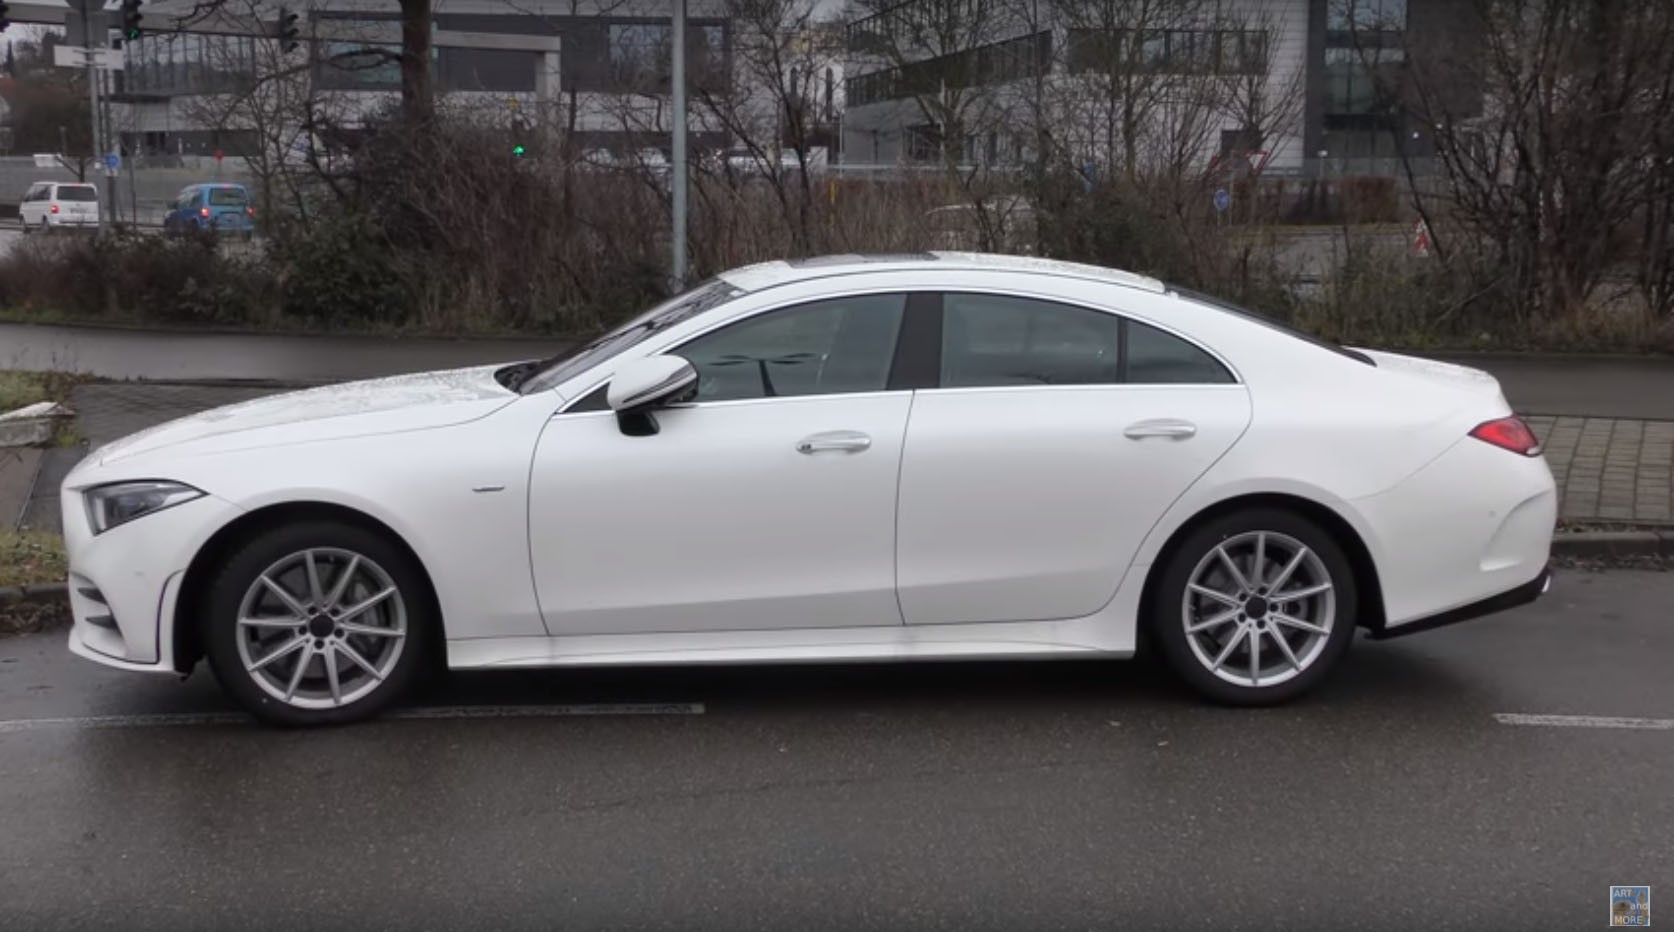 2018 Mercedes-Benz CLS 350 Looks Underwhelming In White